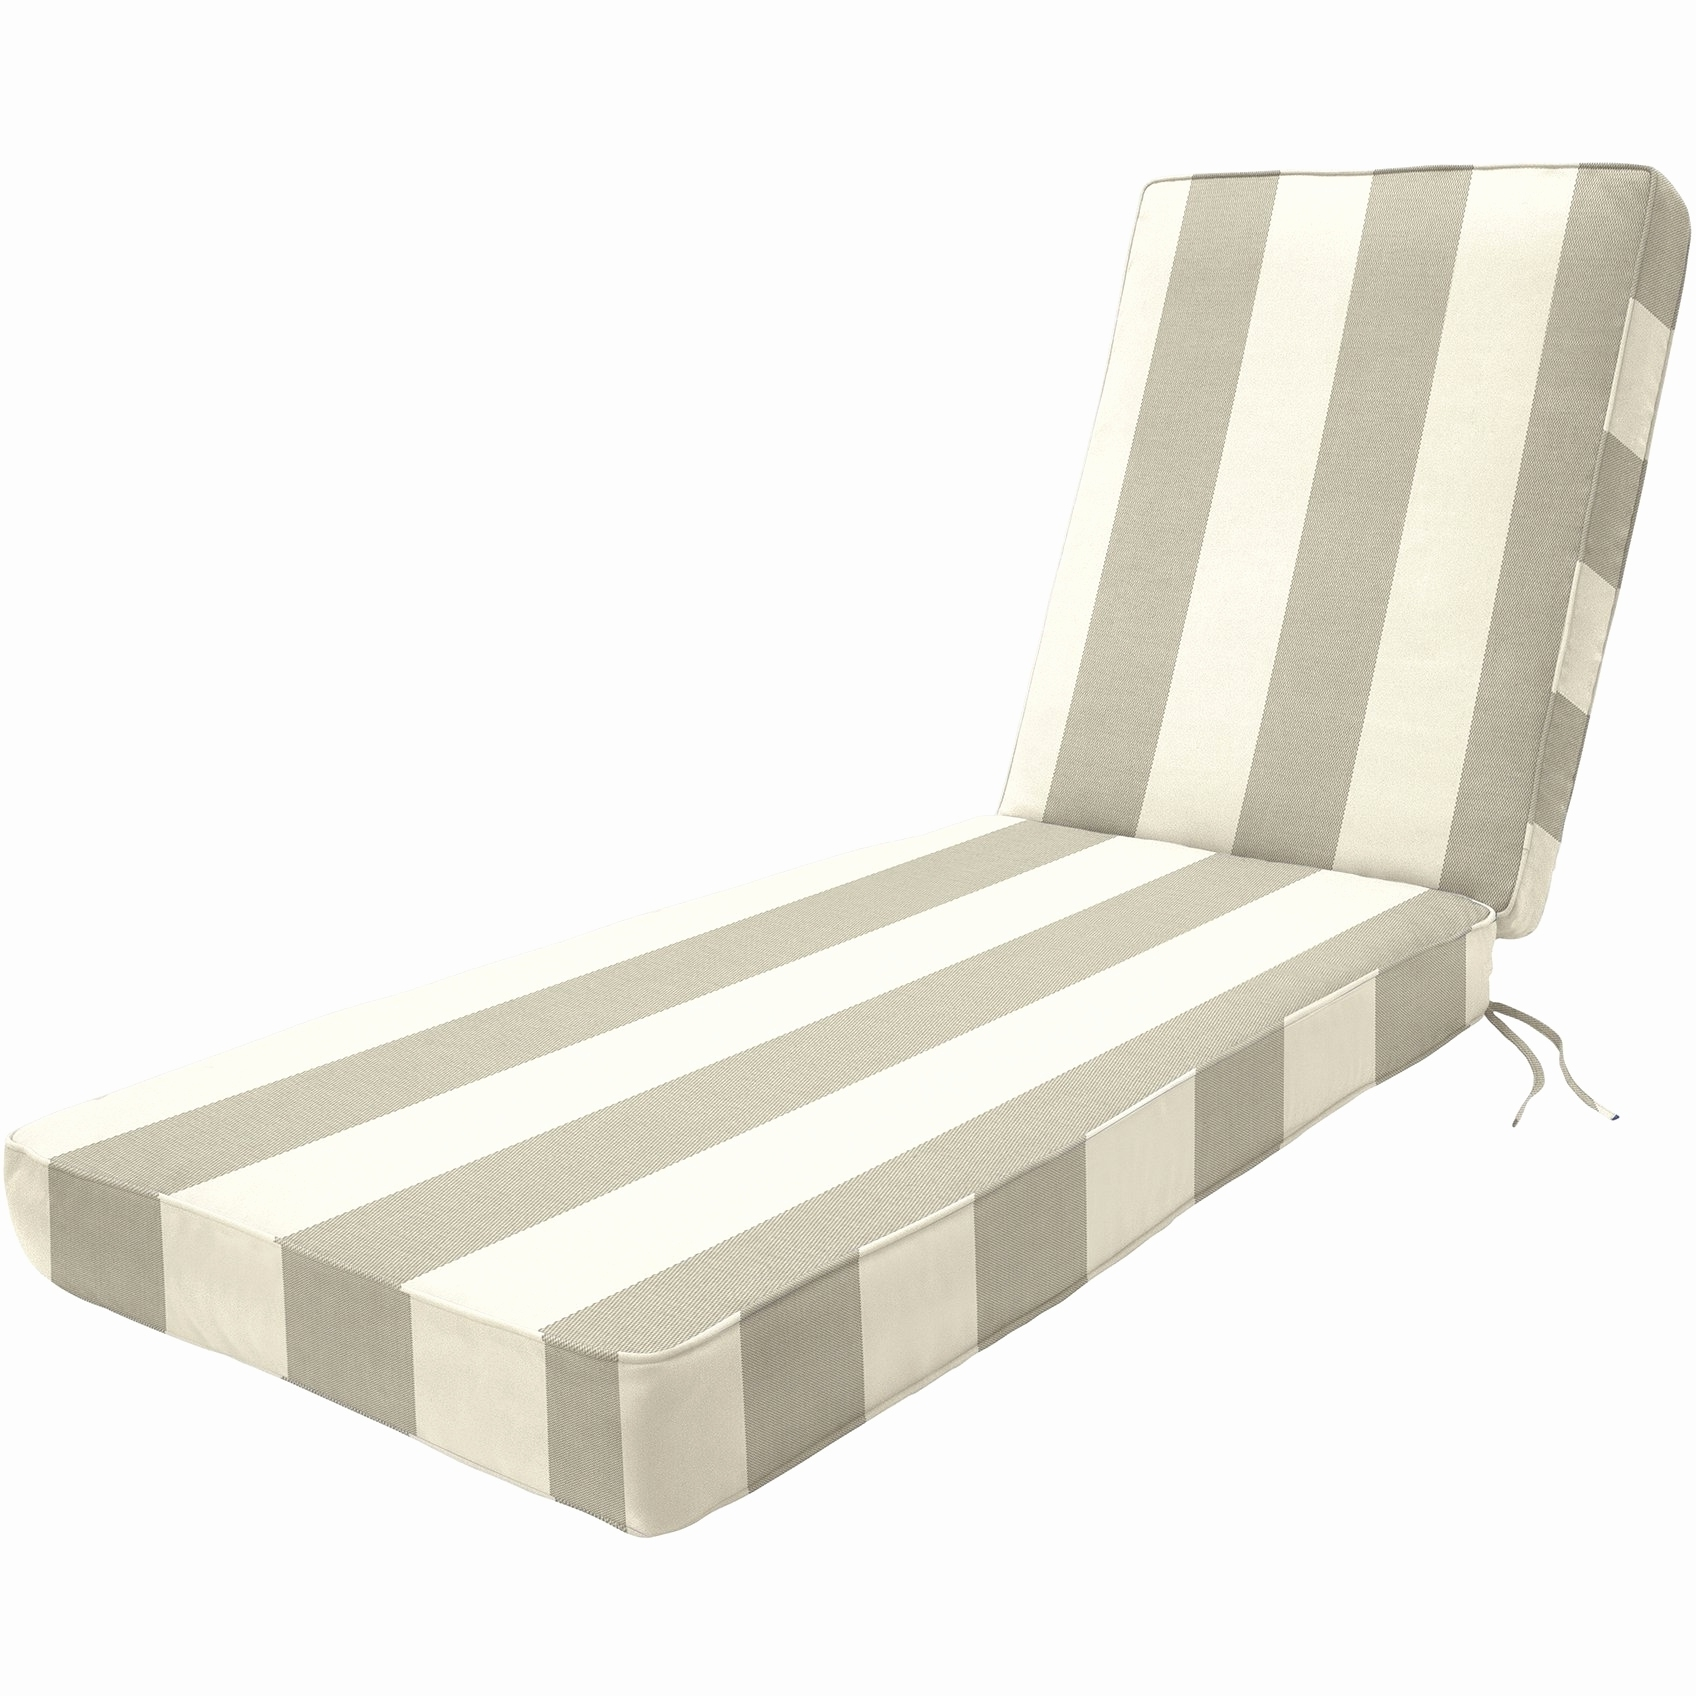 Target Chaise Lounges With 2017 Outdoor : Lowes Chaise Lounge Lounge Chair Target Plastic Lounge (View 11 of 15)